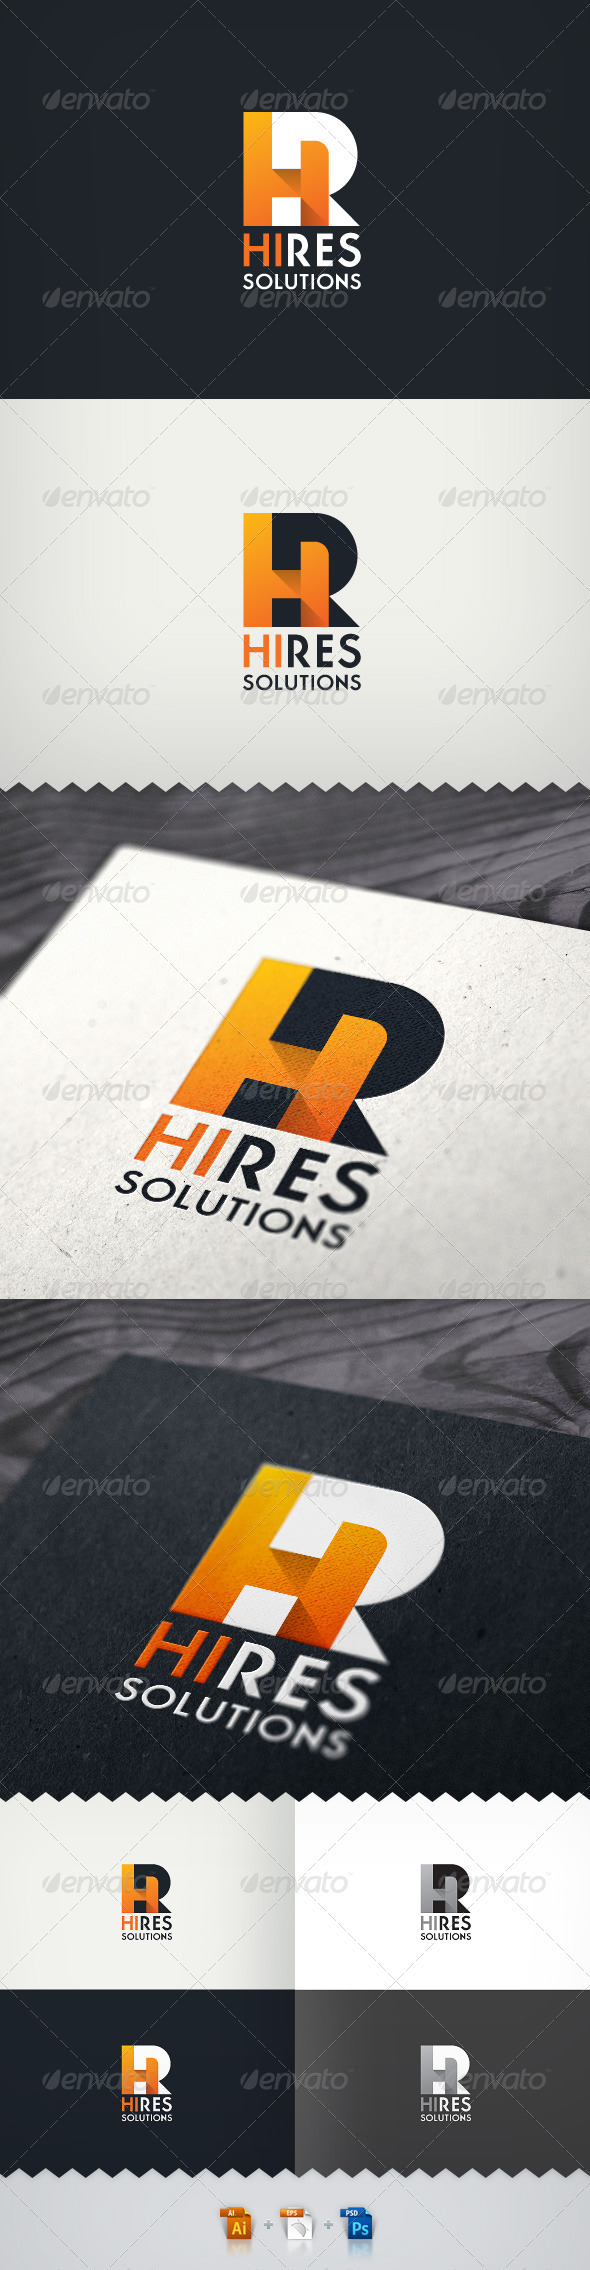 Hi-Res Solutions Render Farm Logo - Letters Logo Templates